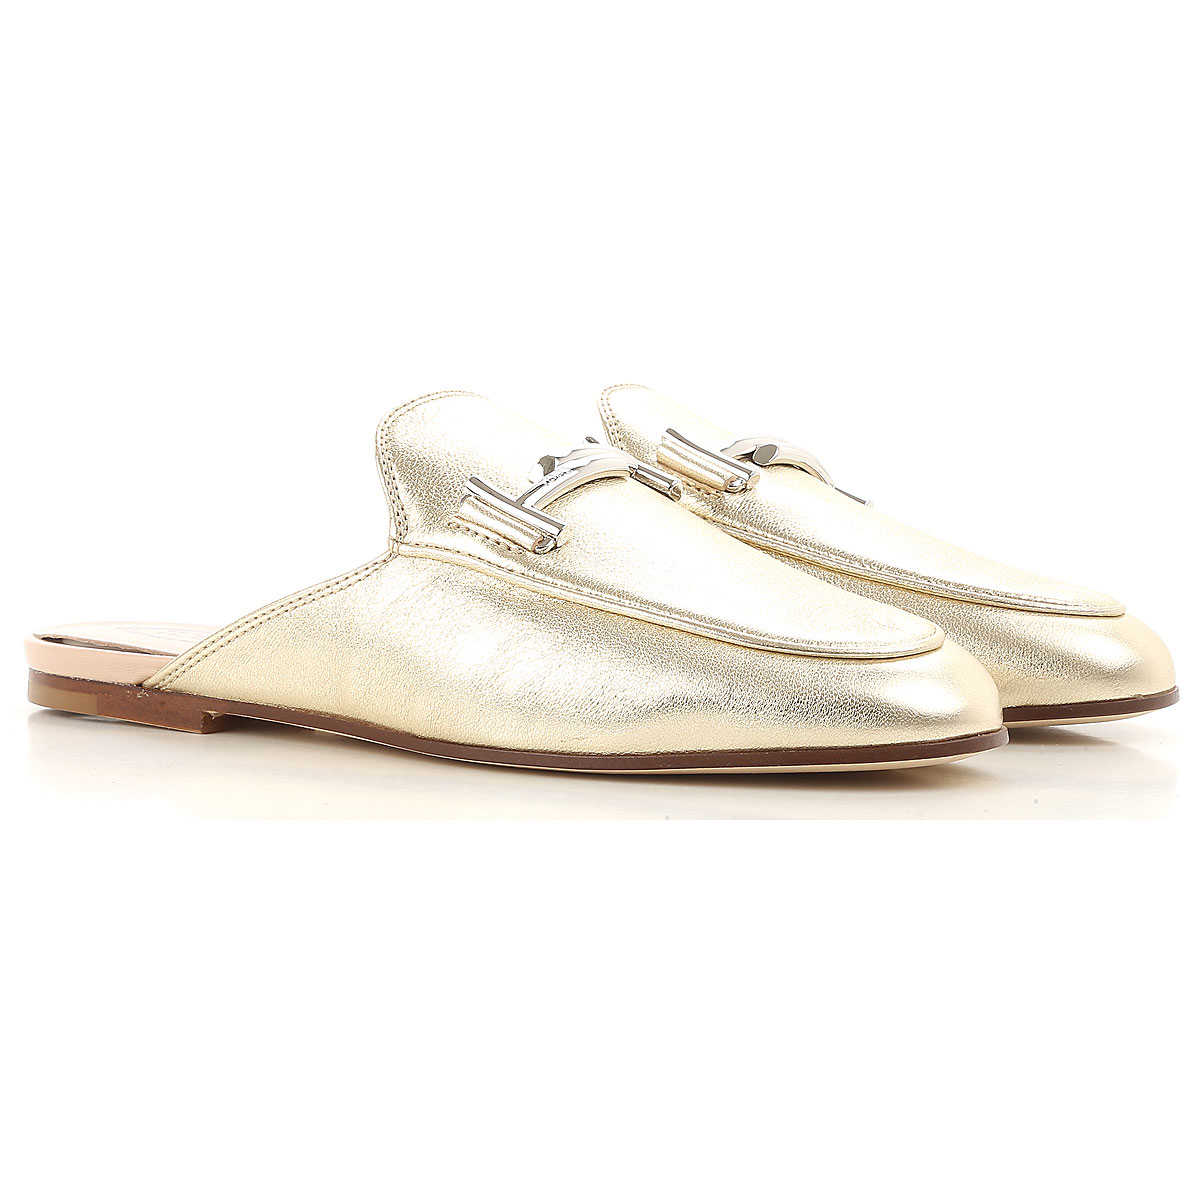 Tods Loafers for Women Platinum USA - GOOFASH